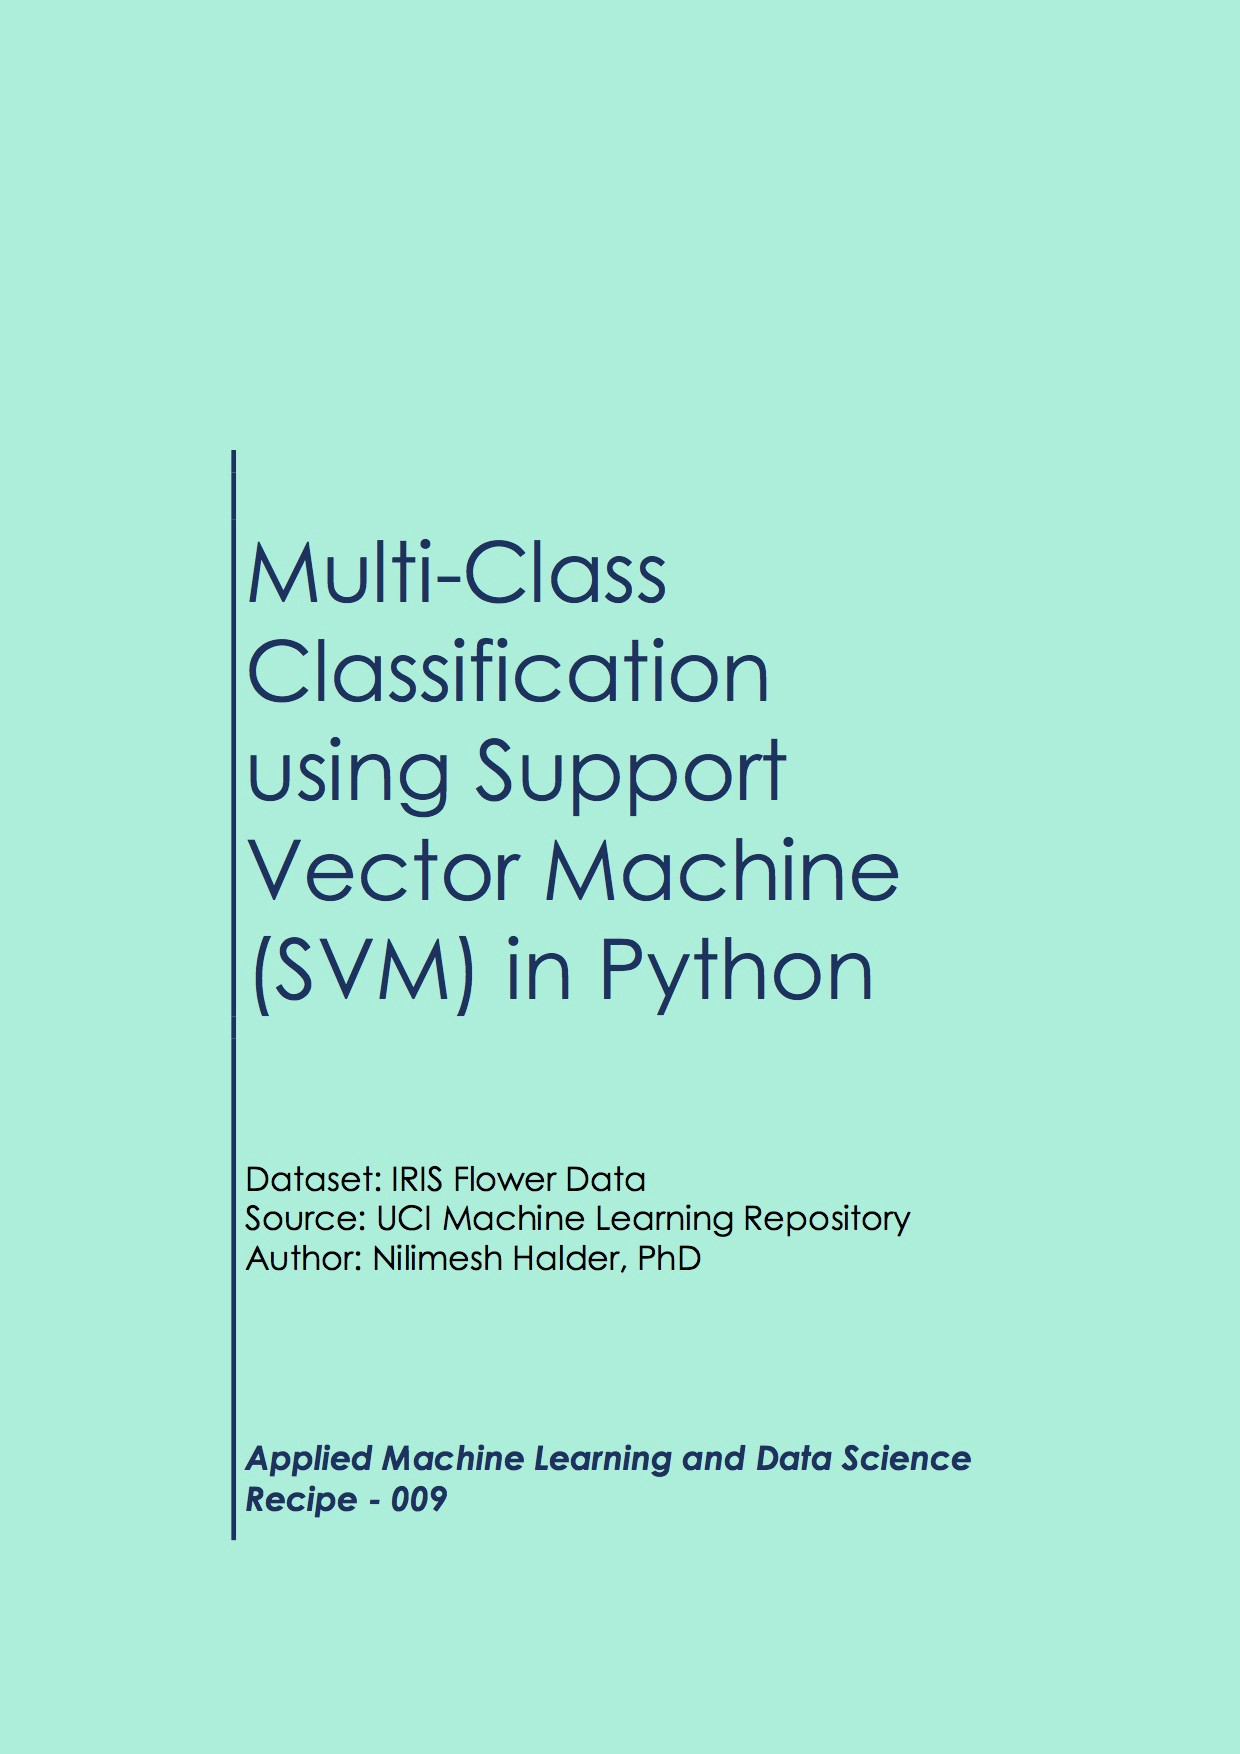 Multiclass Classification using Support Vector Machine (SVM